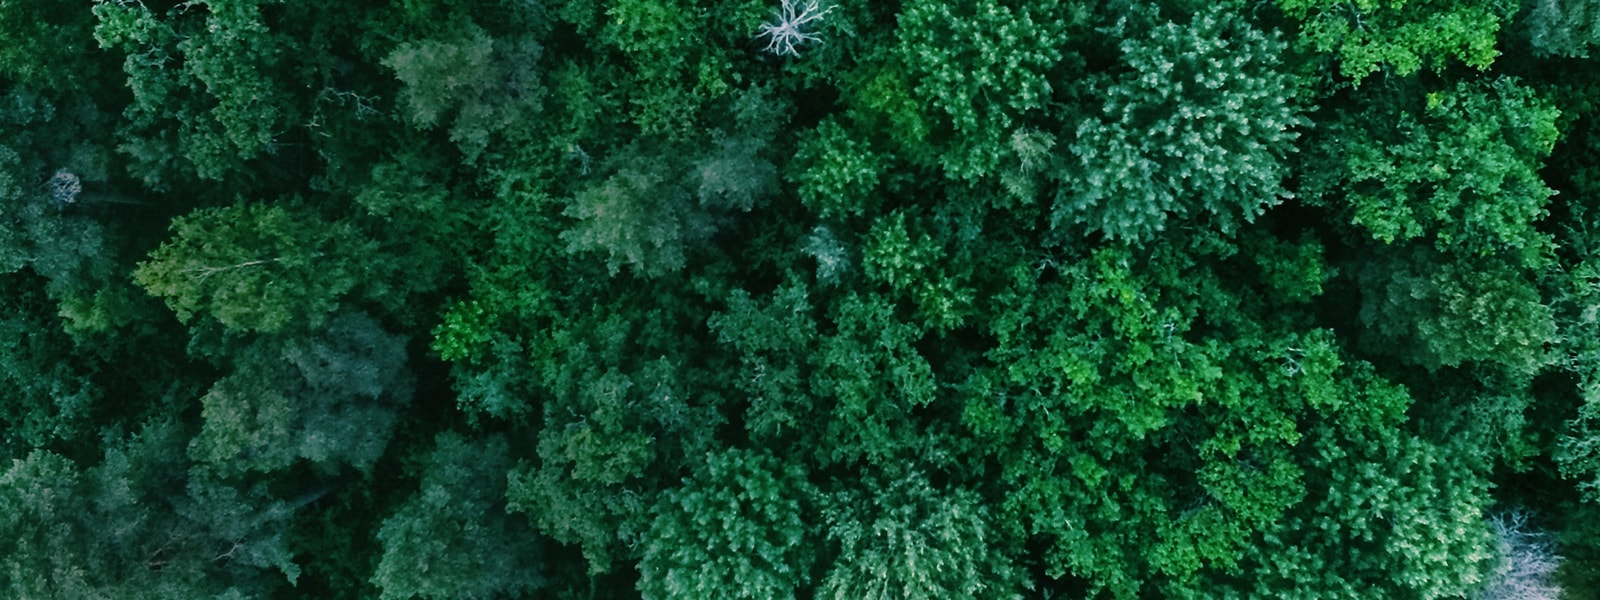 Aerial view of a lush, green forest